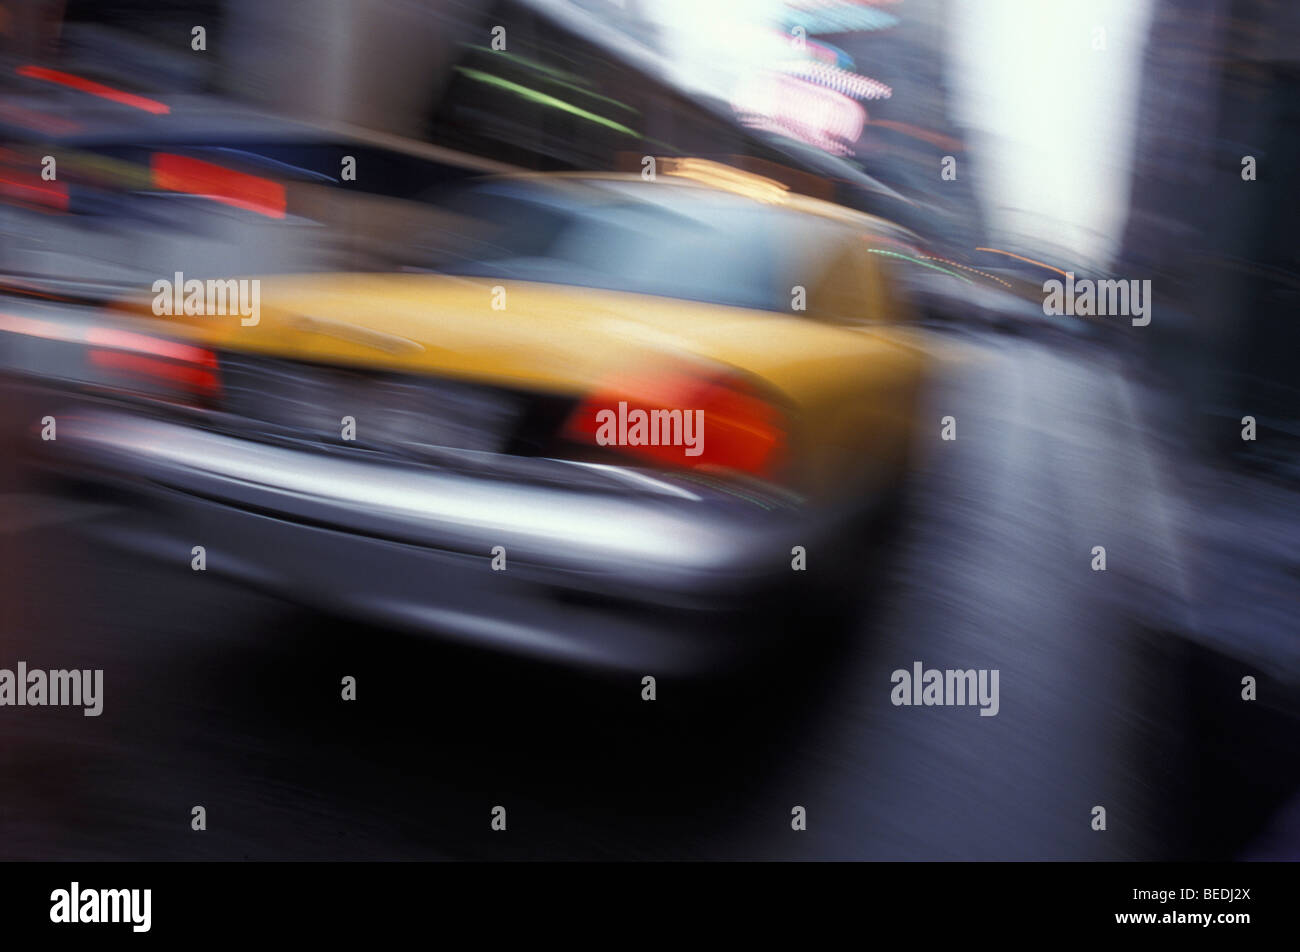 Taxi in New York, USA - Stock Image